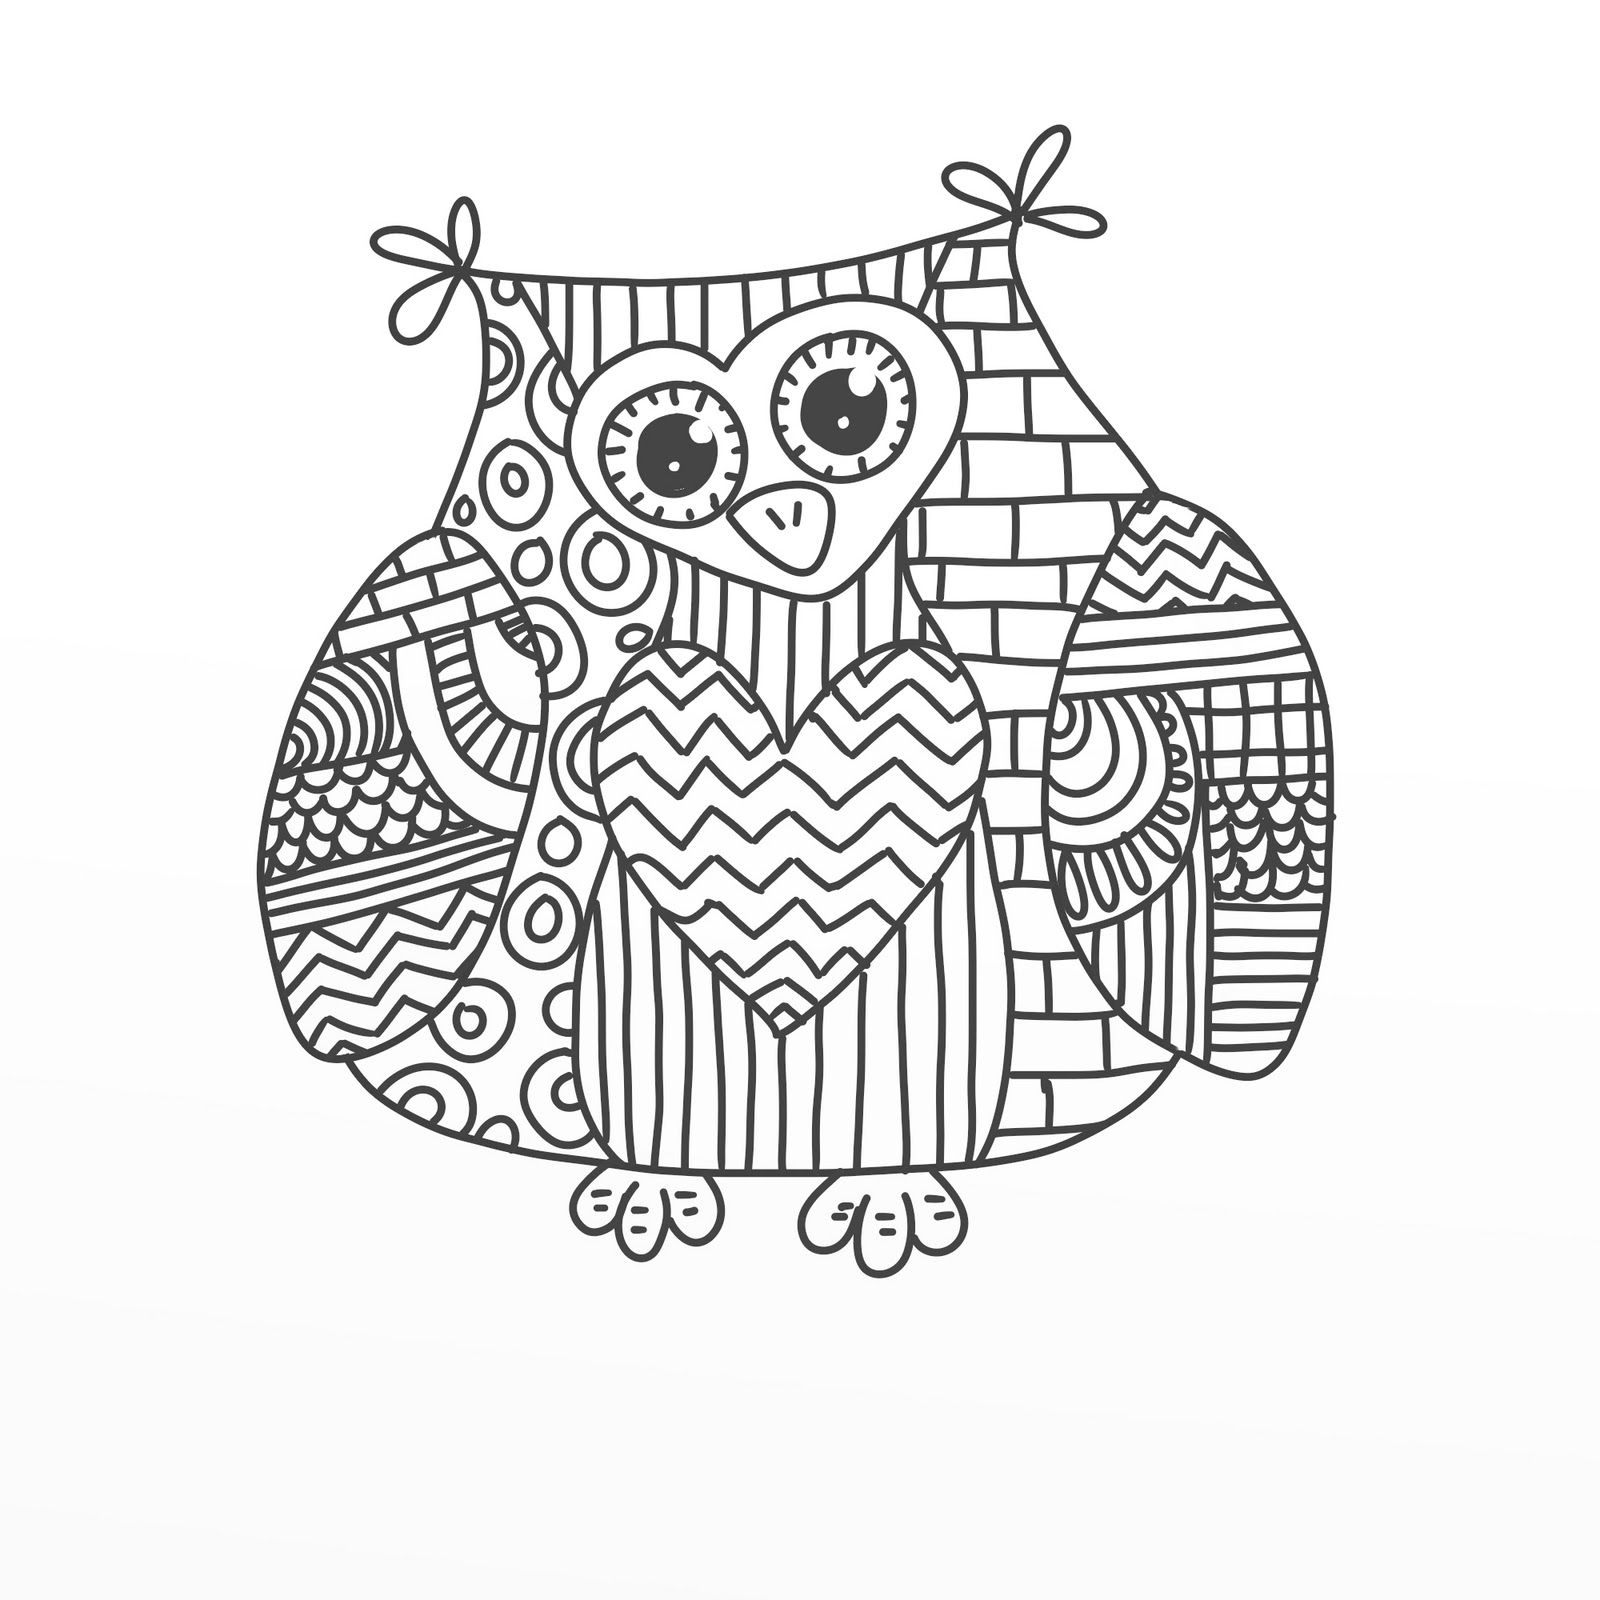 Owl coloring pages free - Download Owl Coloring Pages 2